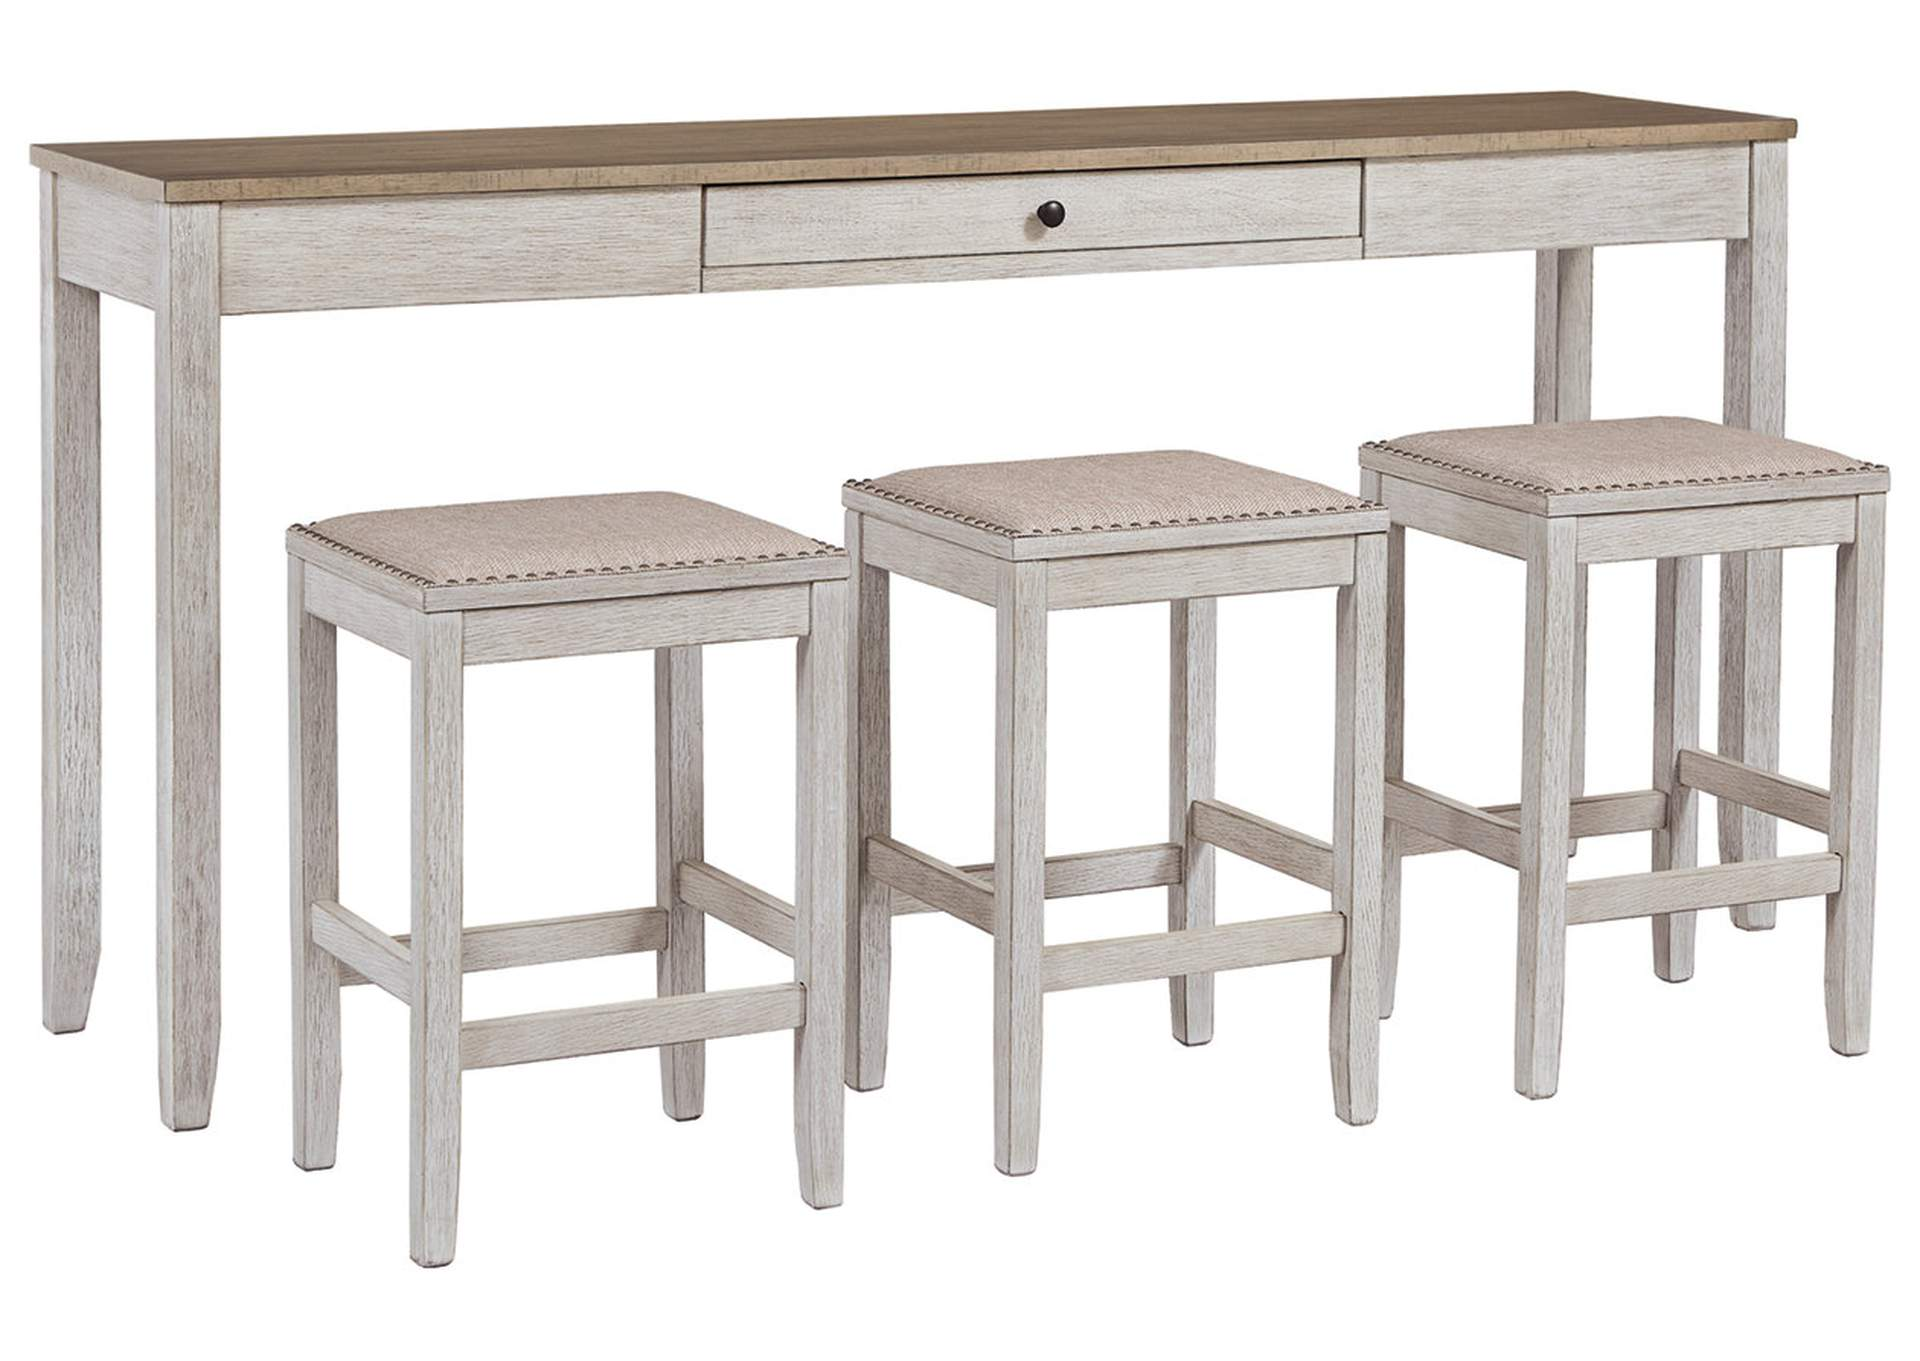 Skempton Counter Height Dining Room Table And Bar Stools Set Of 3 Ivan Smith